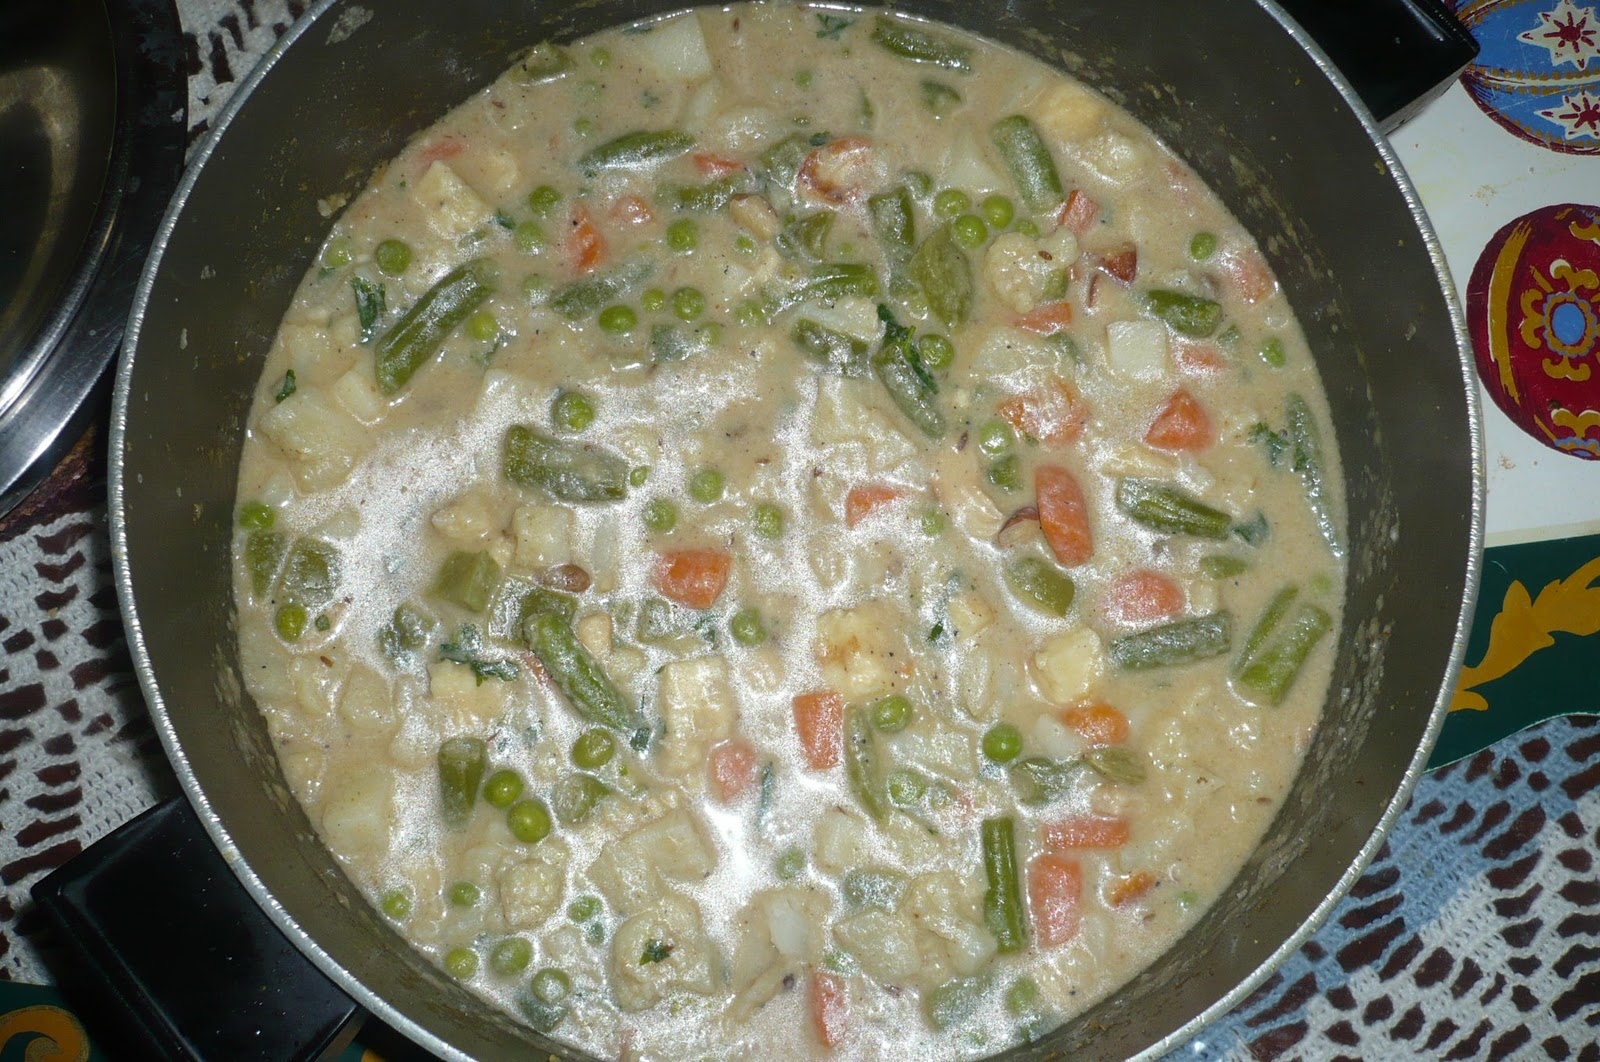 My Desi Blog: Vegetable Navratan Korma